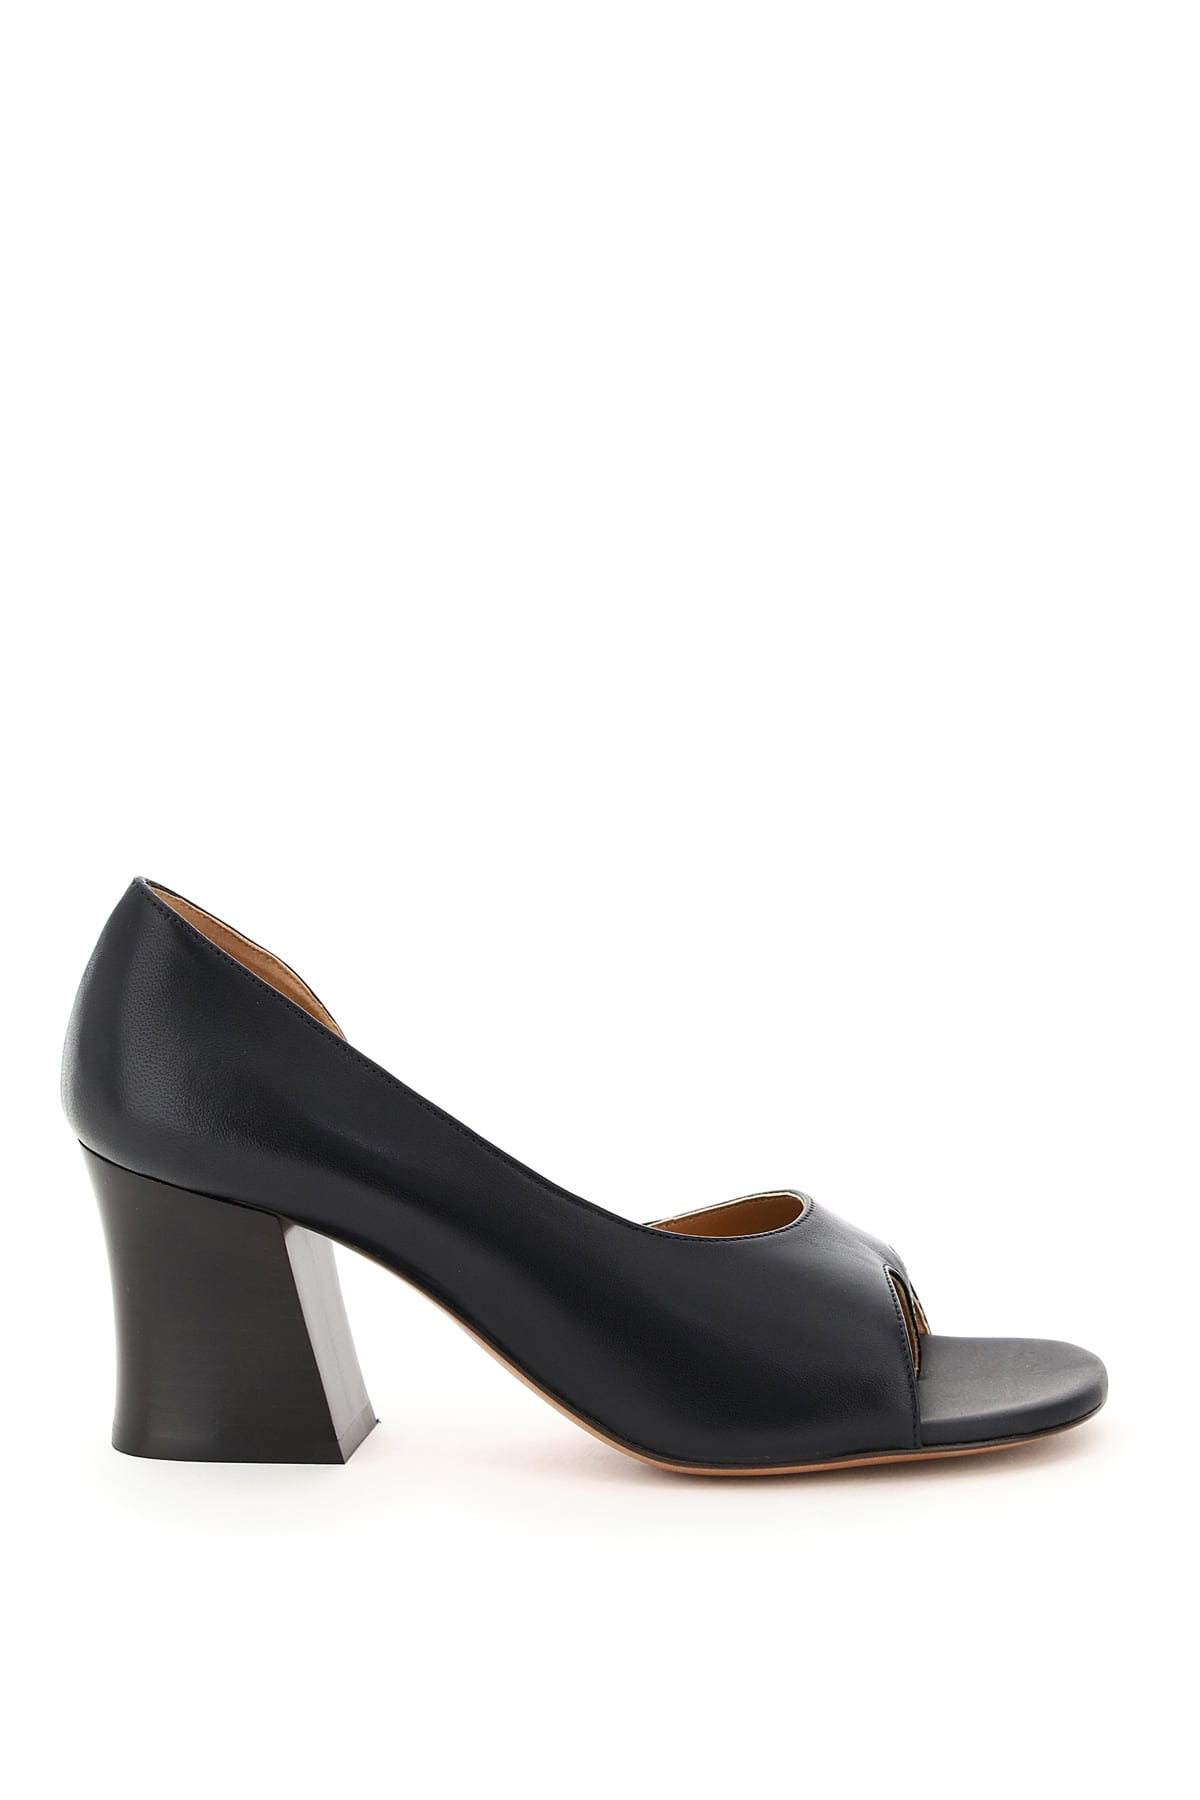 Marni THONGS PUMPS